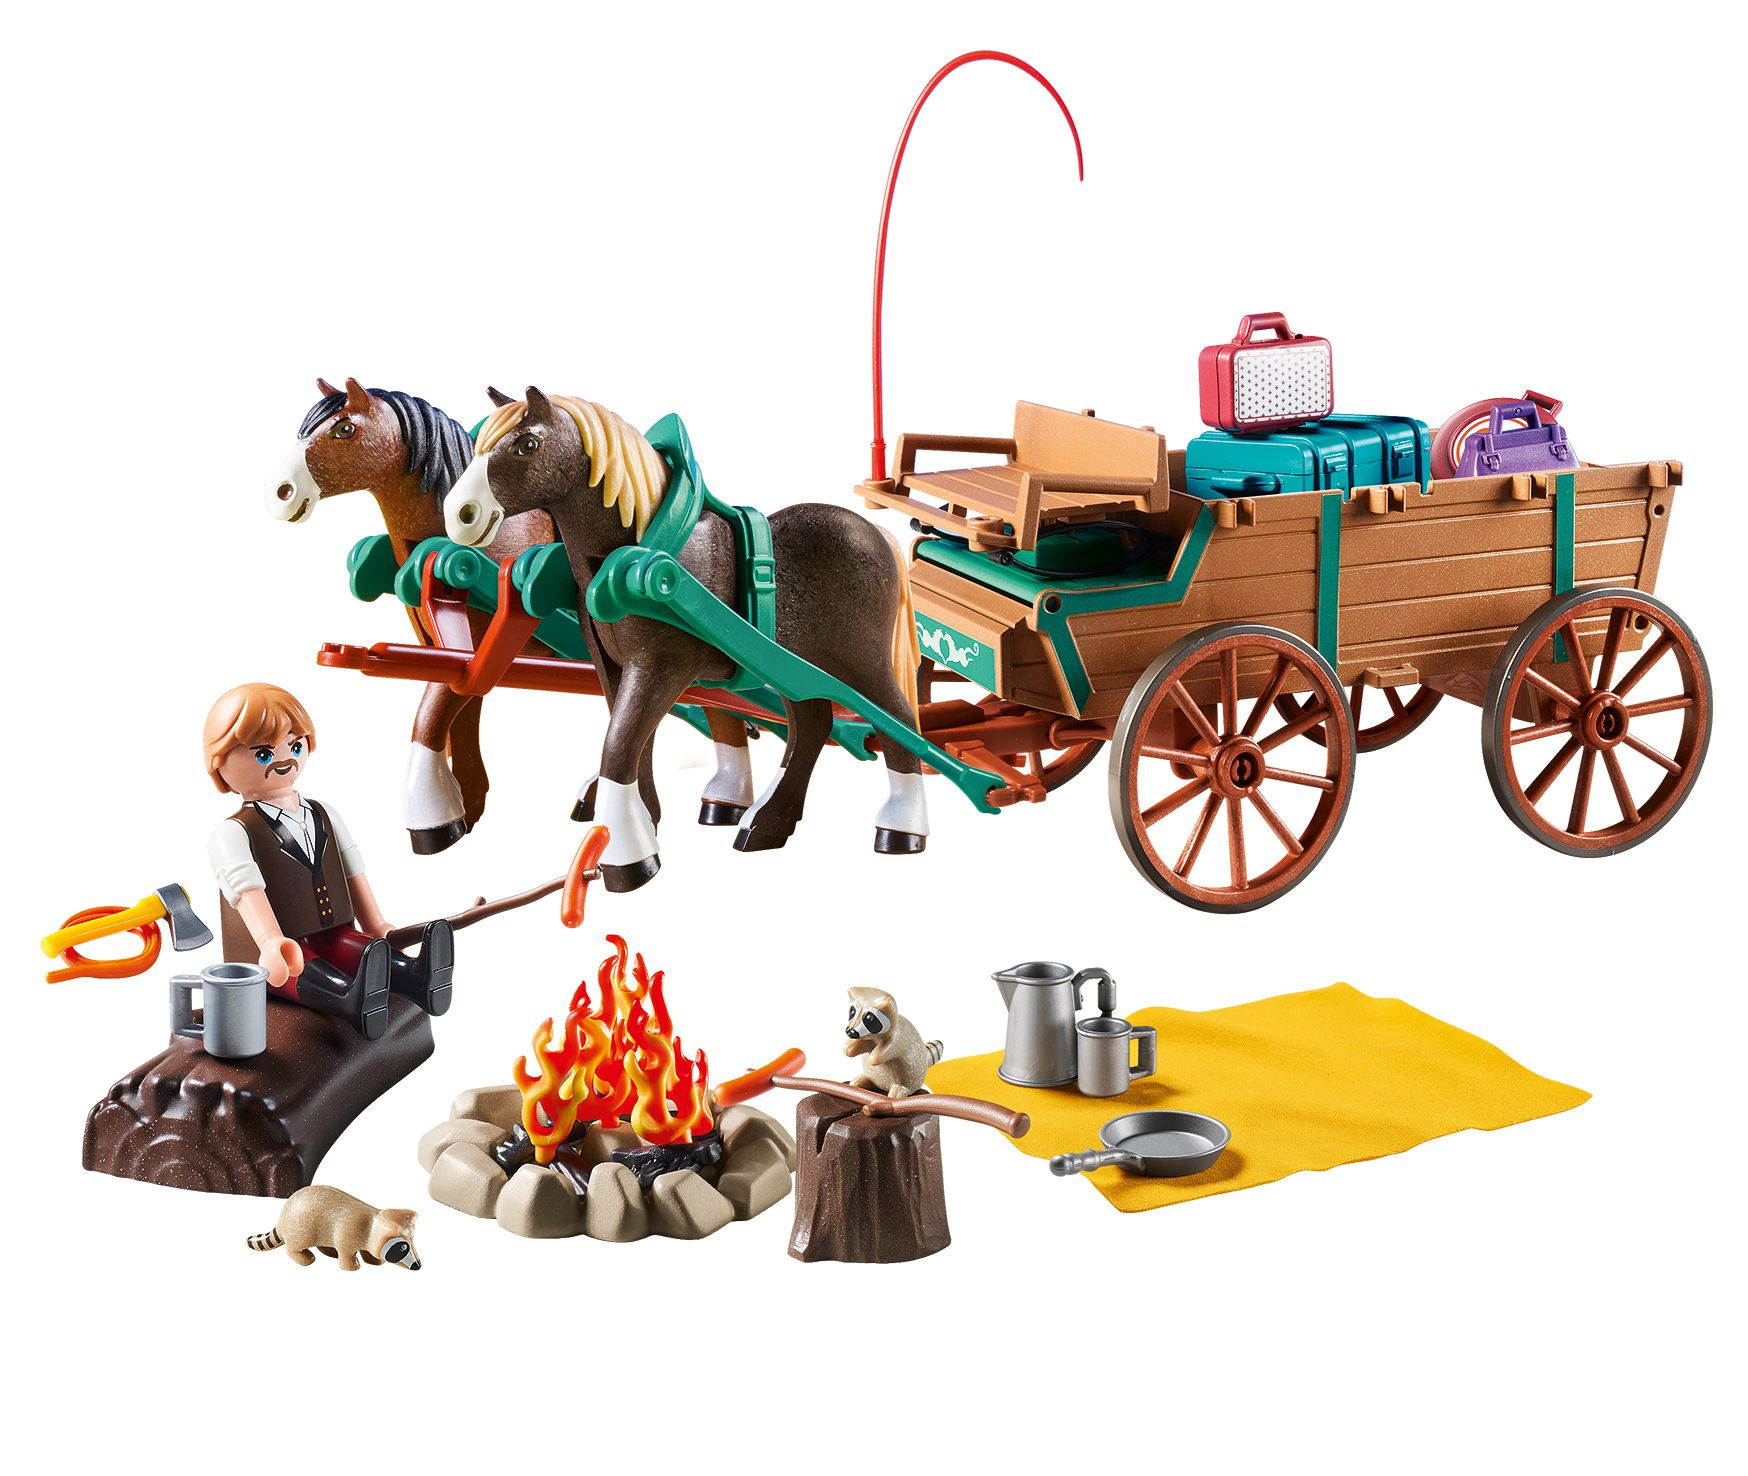 2020 Coral House Christmas Horse Wagon Ride PLAYMOBIL Spirit Riding Free Lucky's Dad and Wagon   Walmart.